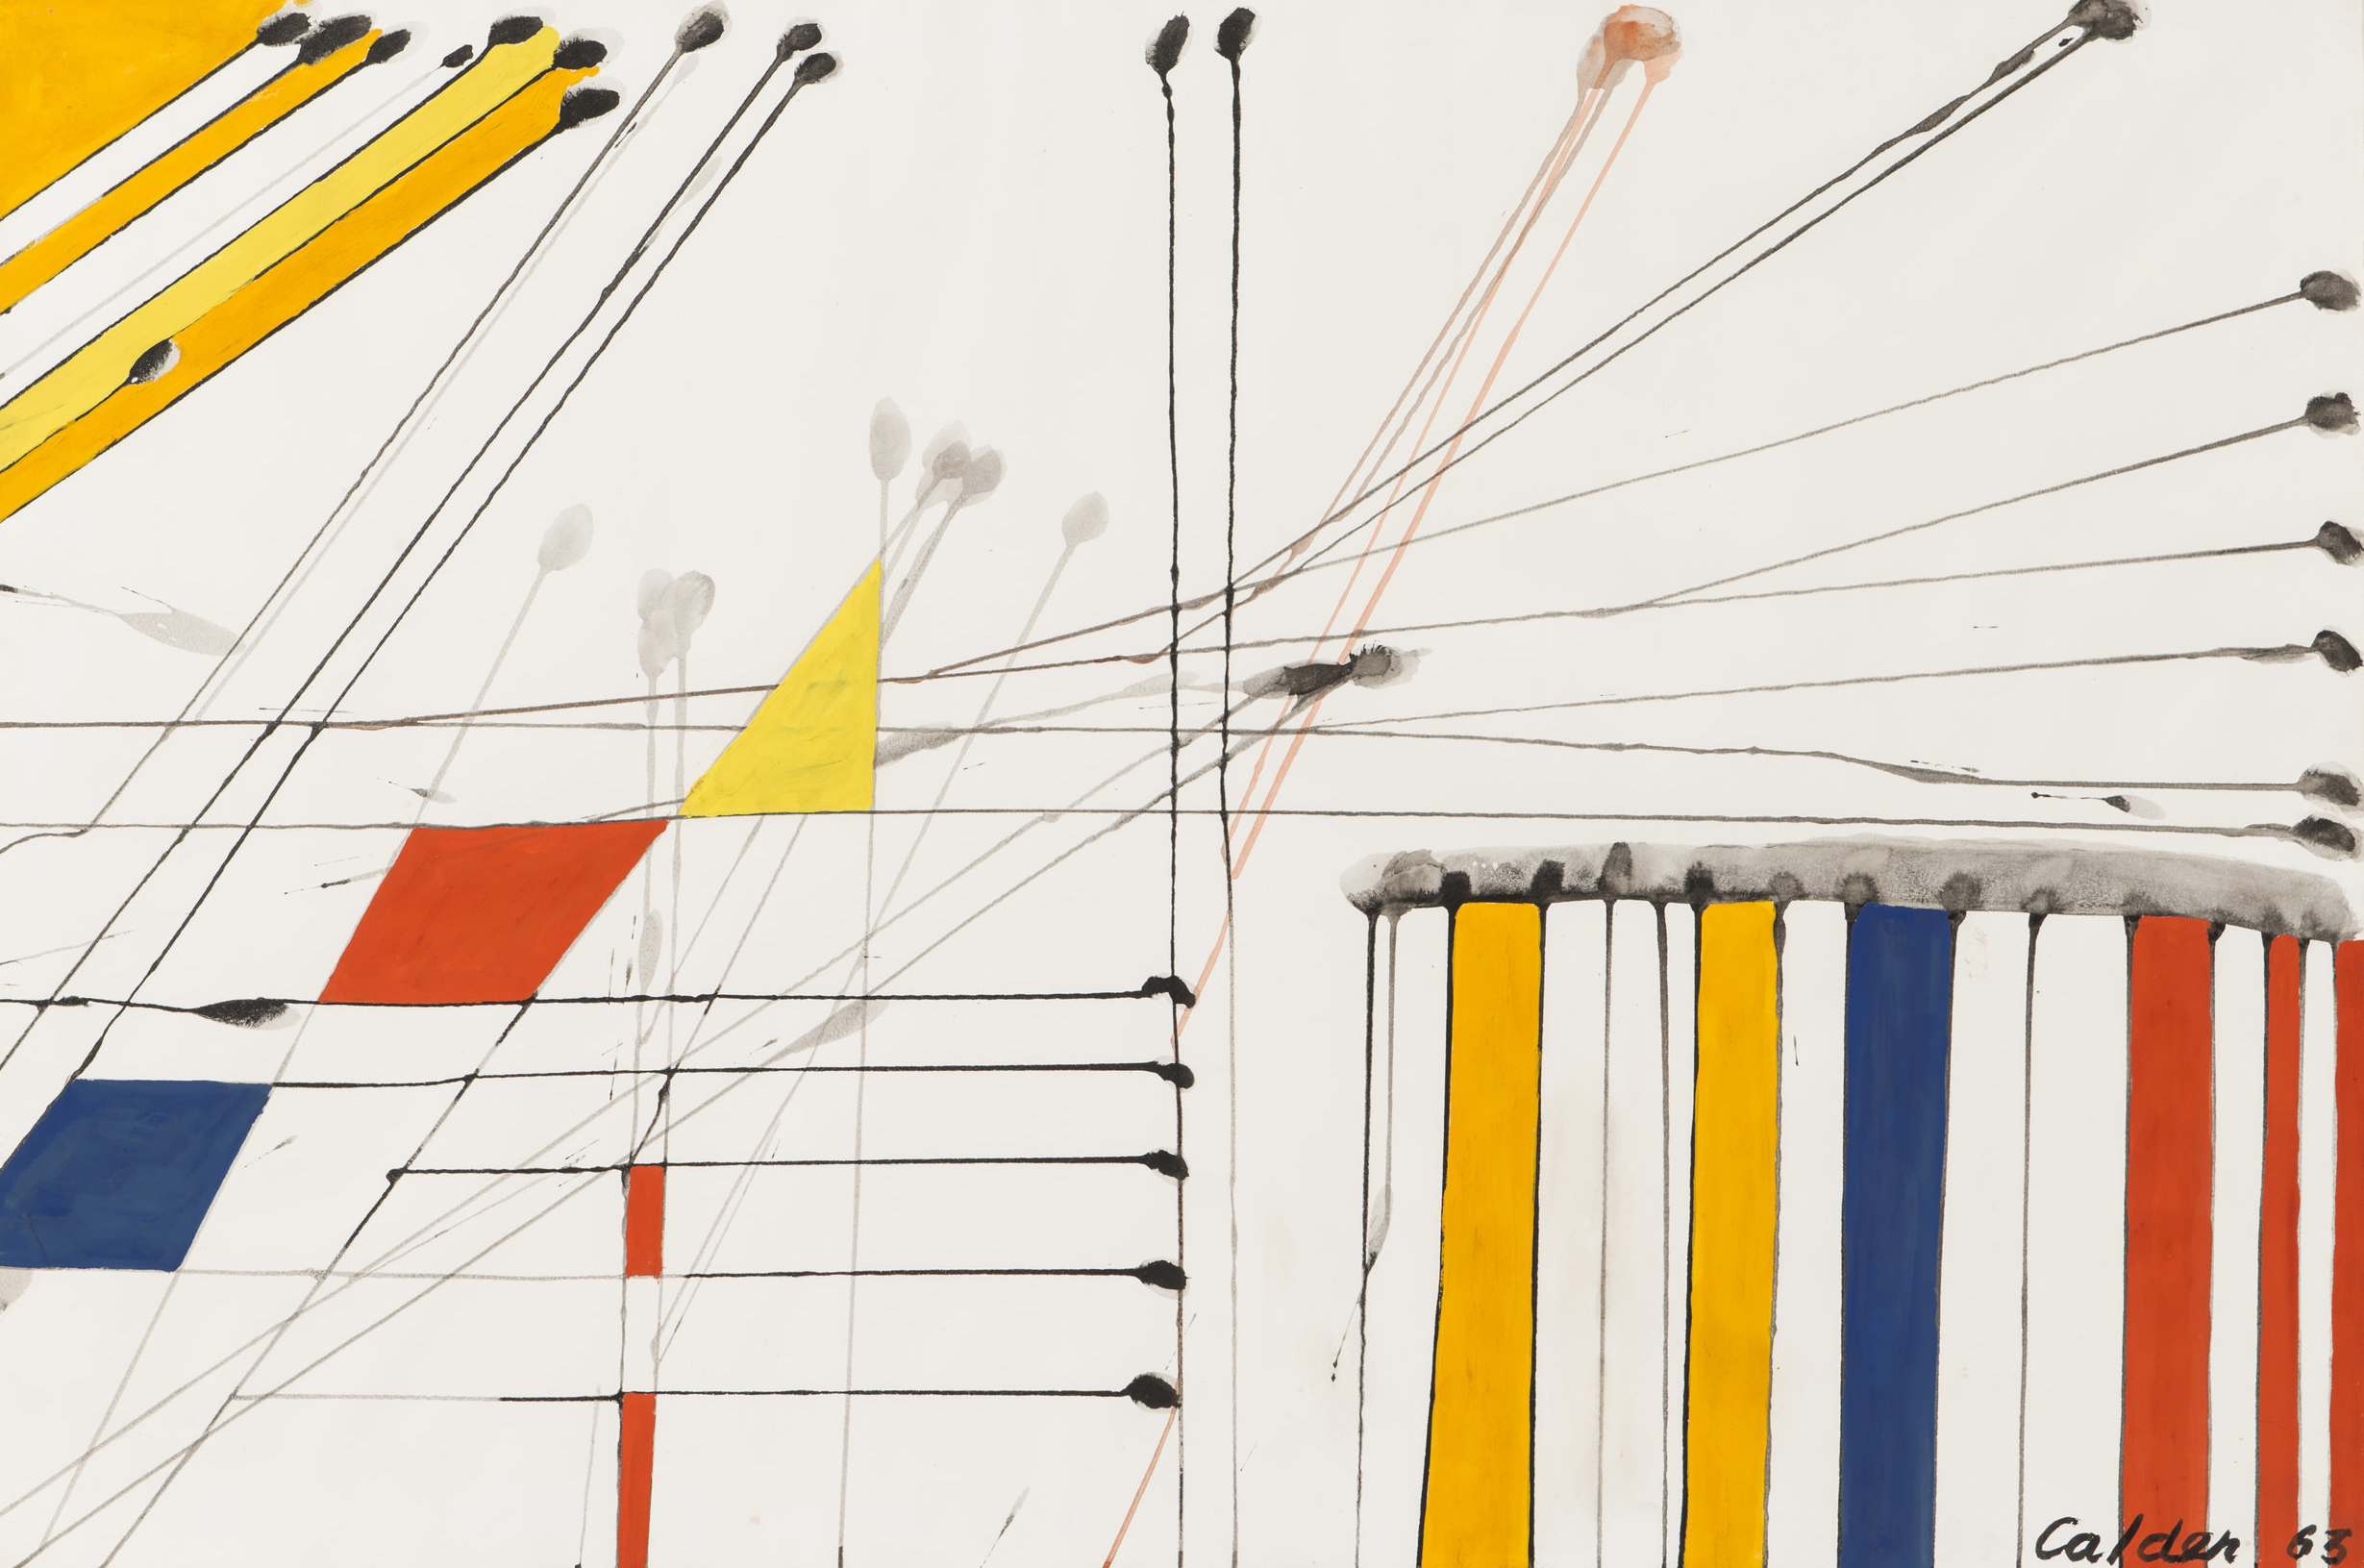 Untitled   ,  Ink and gouache on J. Whatman watermarked paper, 1963, 26 3/4 x 40 inches